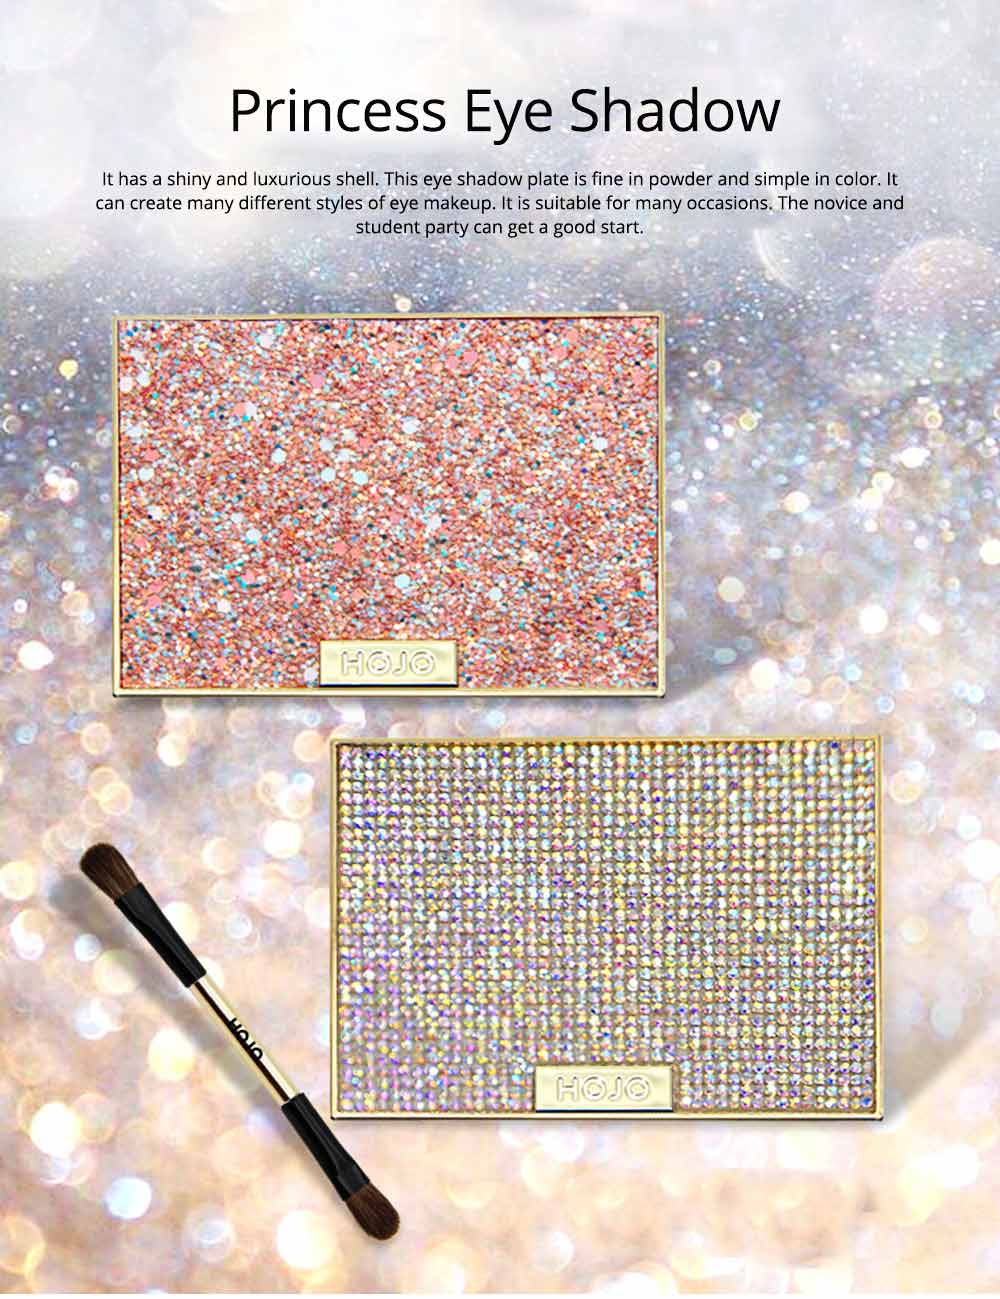 Tang Makeup Style Princess Eye Shadow Disc for Students Beginners Parity Unicorn Eyeshadow Disc 0